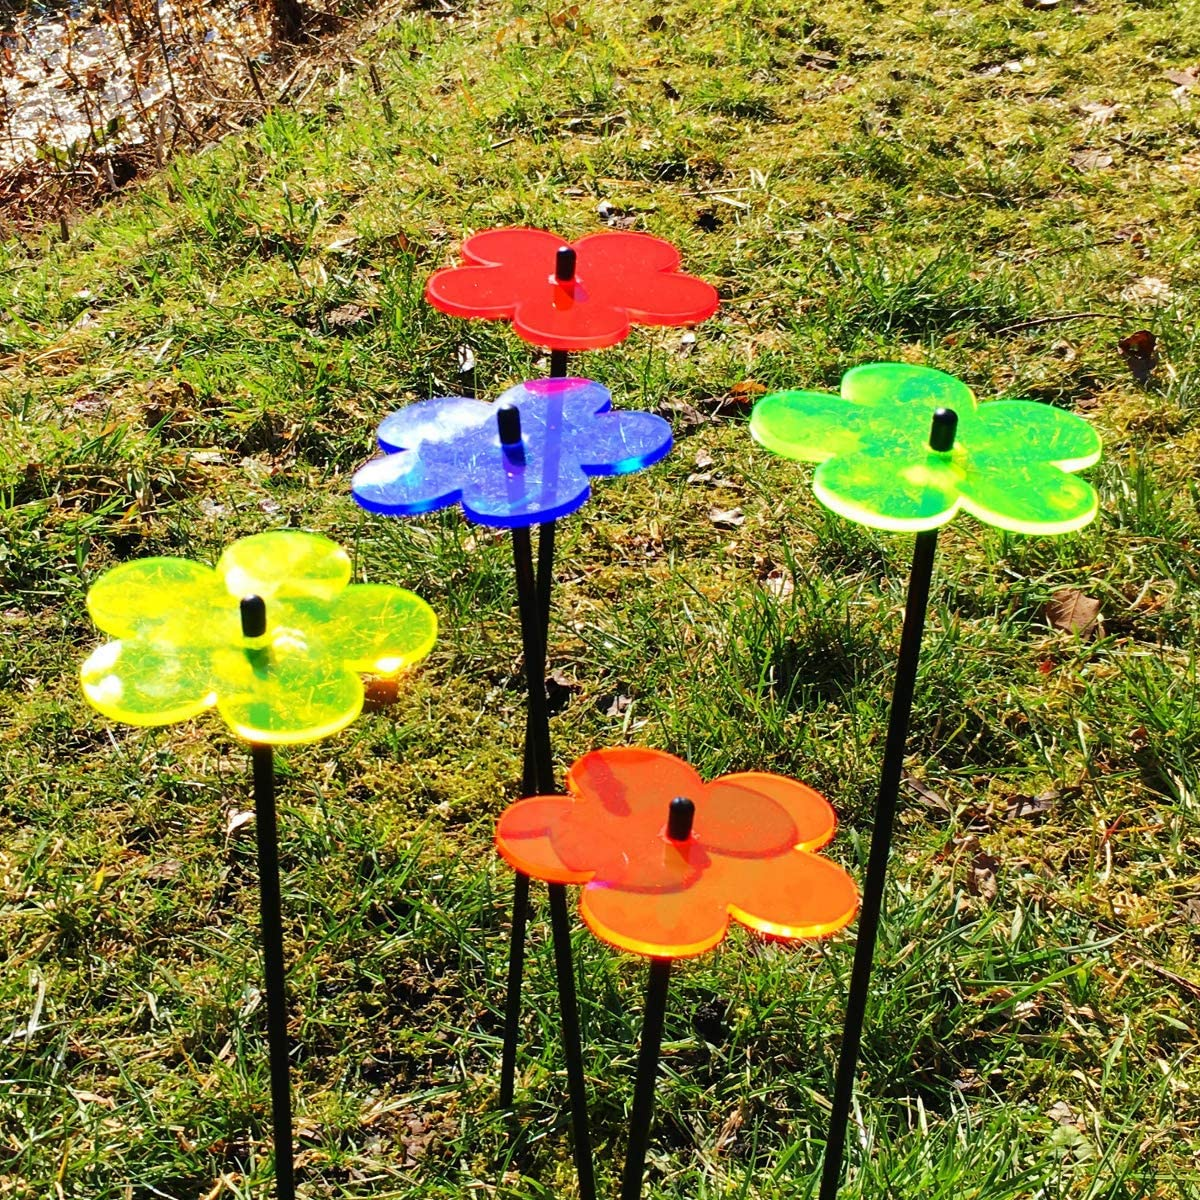 SunCatcher Set of 5: Blossom innovative Home Decor 250mm // 9,84 high fluorescent garden ornament Colour:Blue GLOWING DECORATION on stick